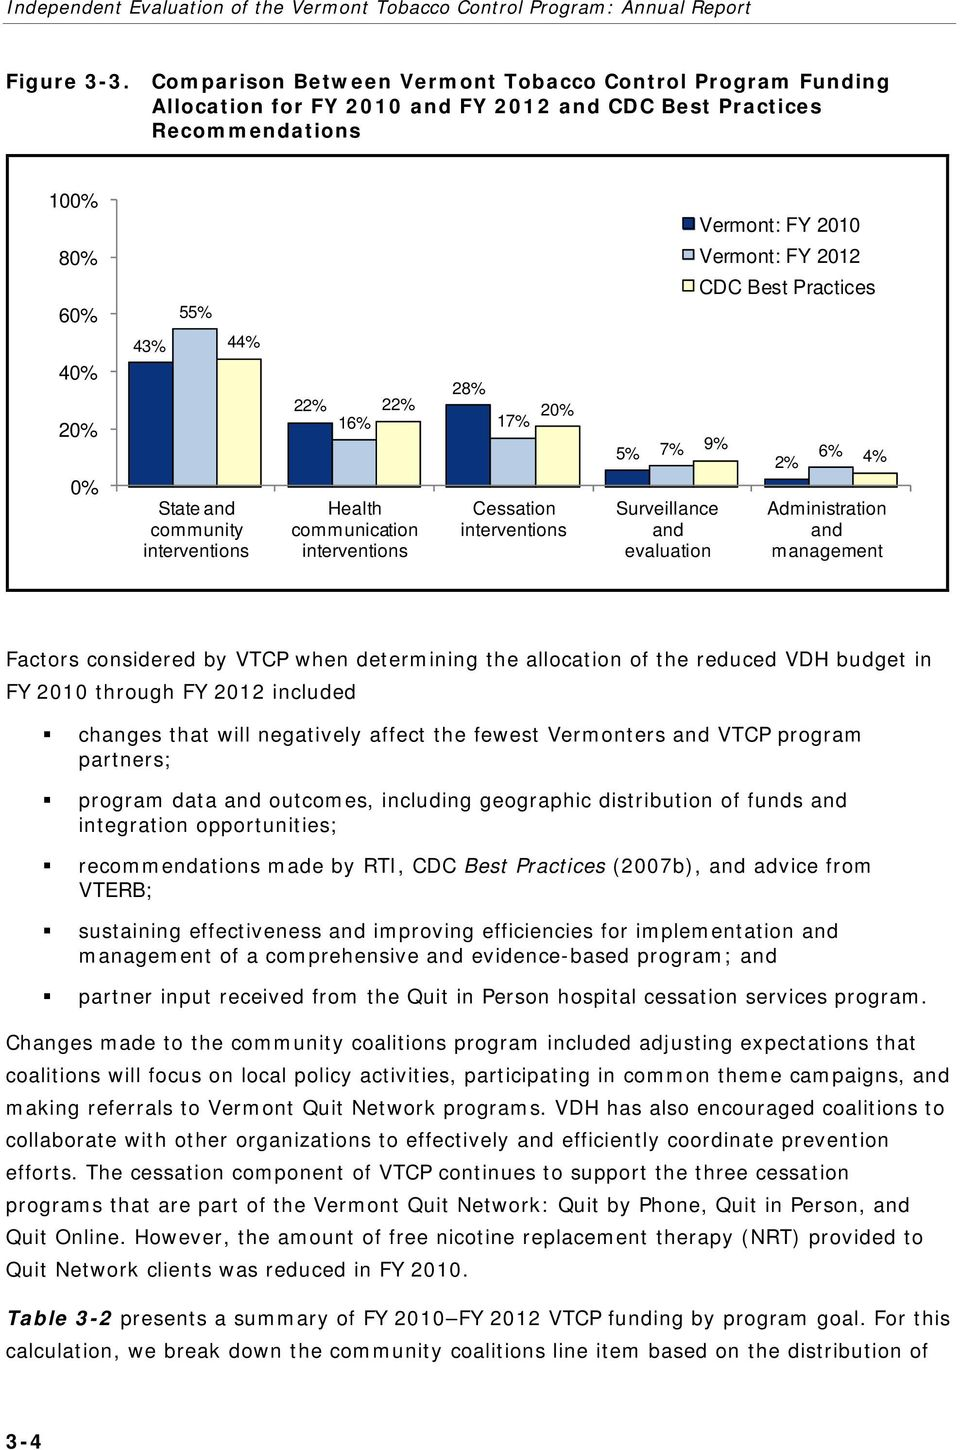 interventions 22% 28% 22% 20% 16% 17% Health communication interventions Cessation interventions 5% 7% 9% 6% 2% Surveillance and evaluation Vermont: FY 2010 Vermont: FY 2012 CDC Best Practices 4%